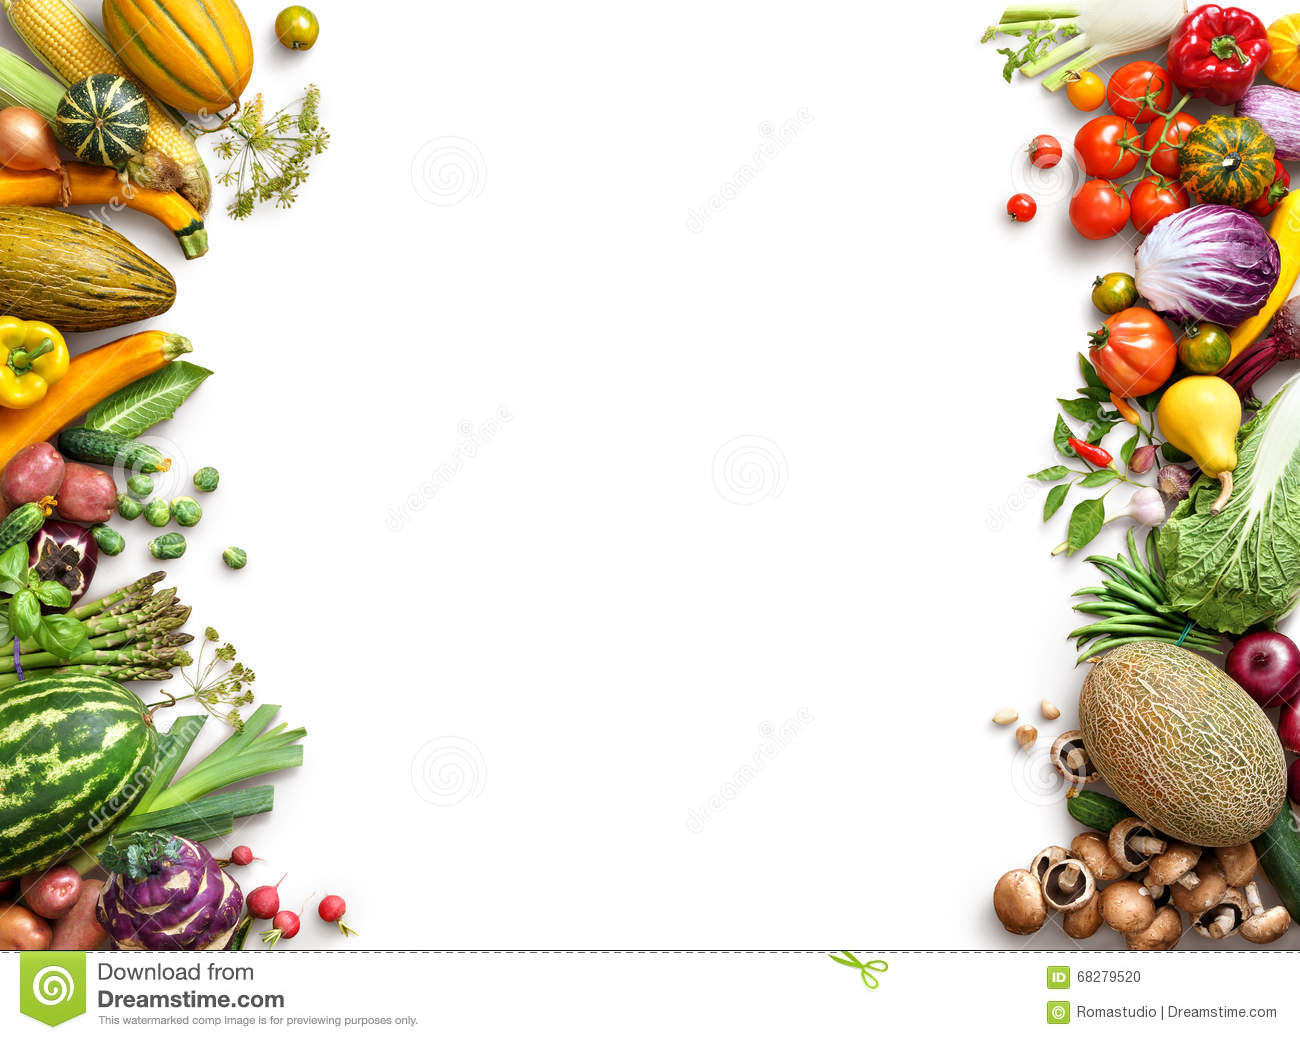 fruits that are green healthy food fruits and vegetables